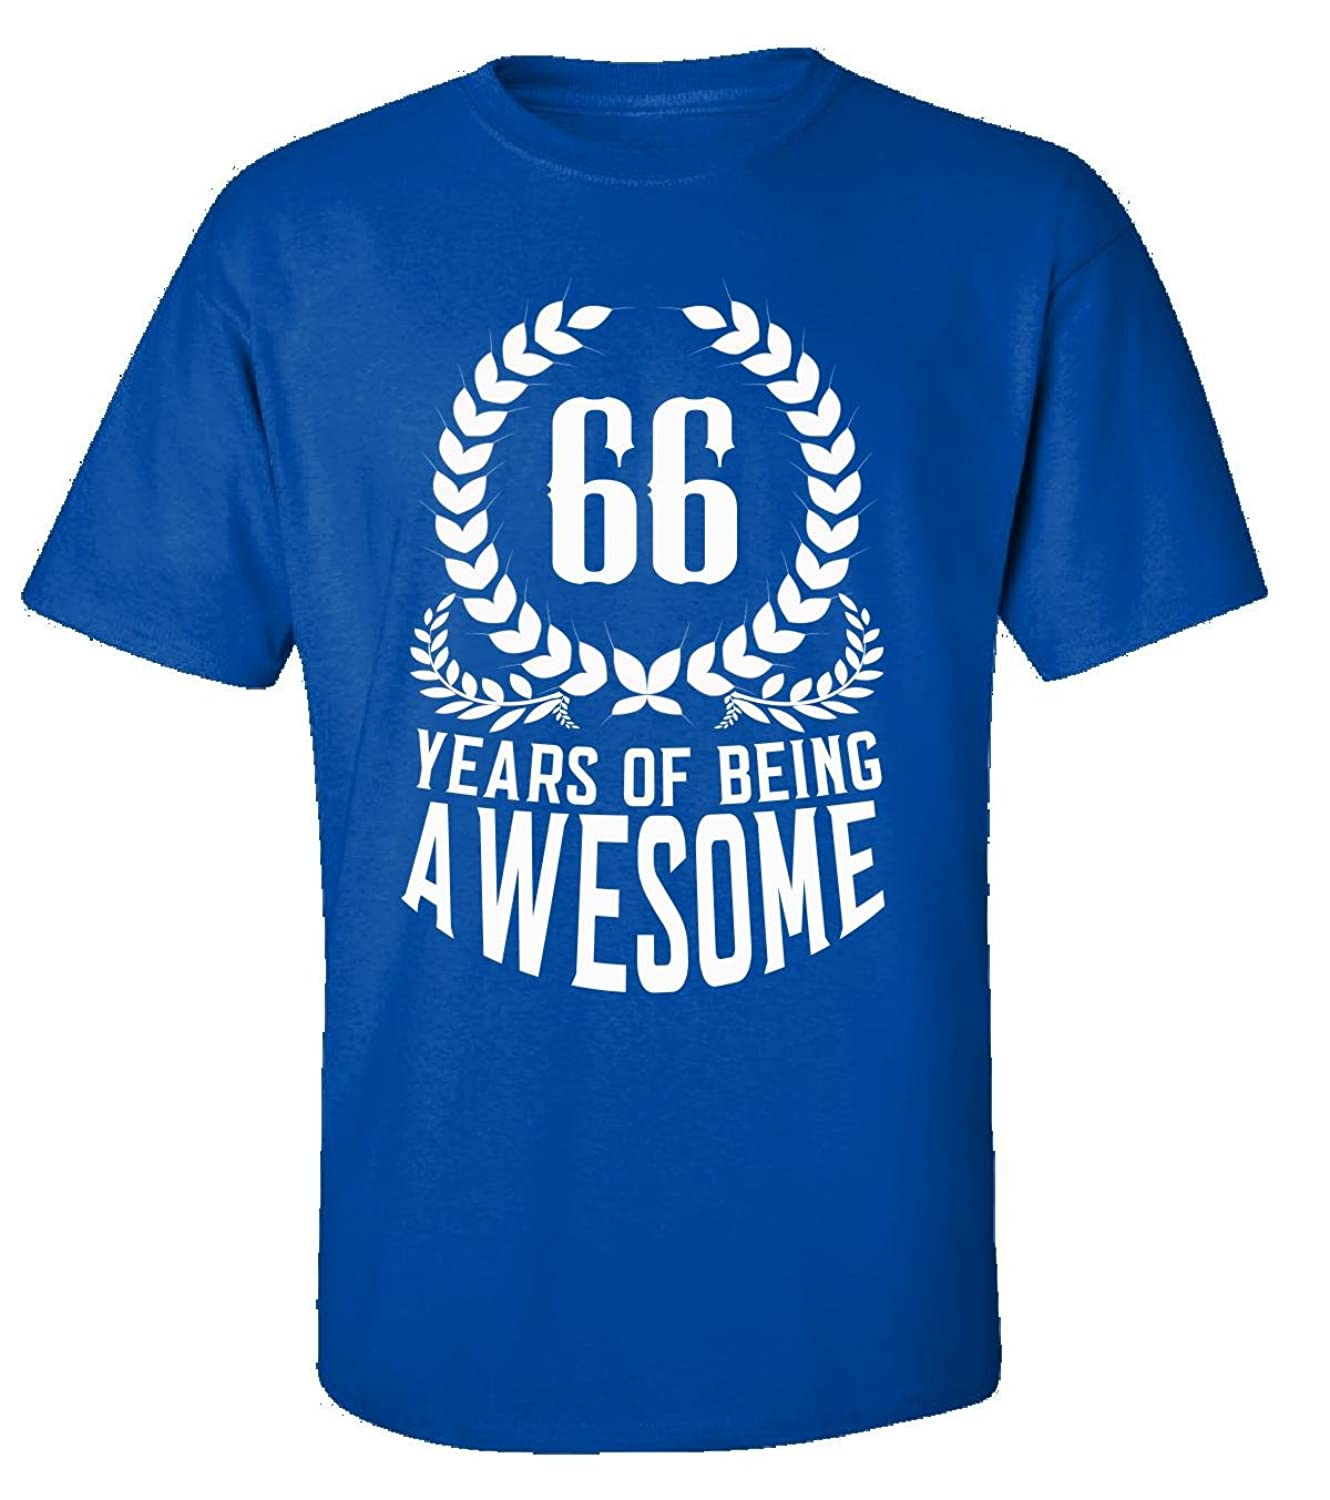 66th Birthday Gift For Men Woman 66 Years Of Being Awesome - Adult Shirt